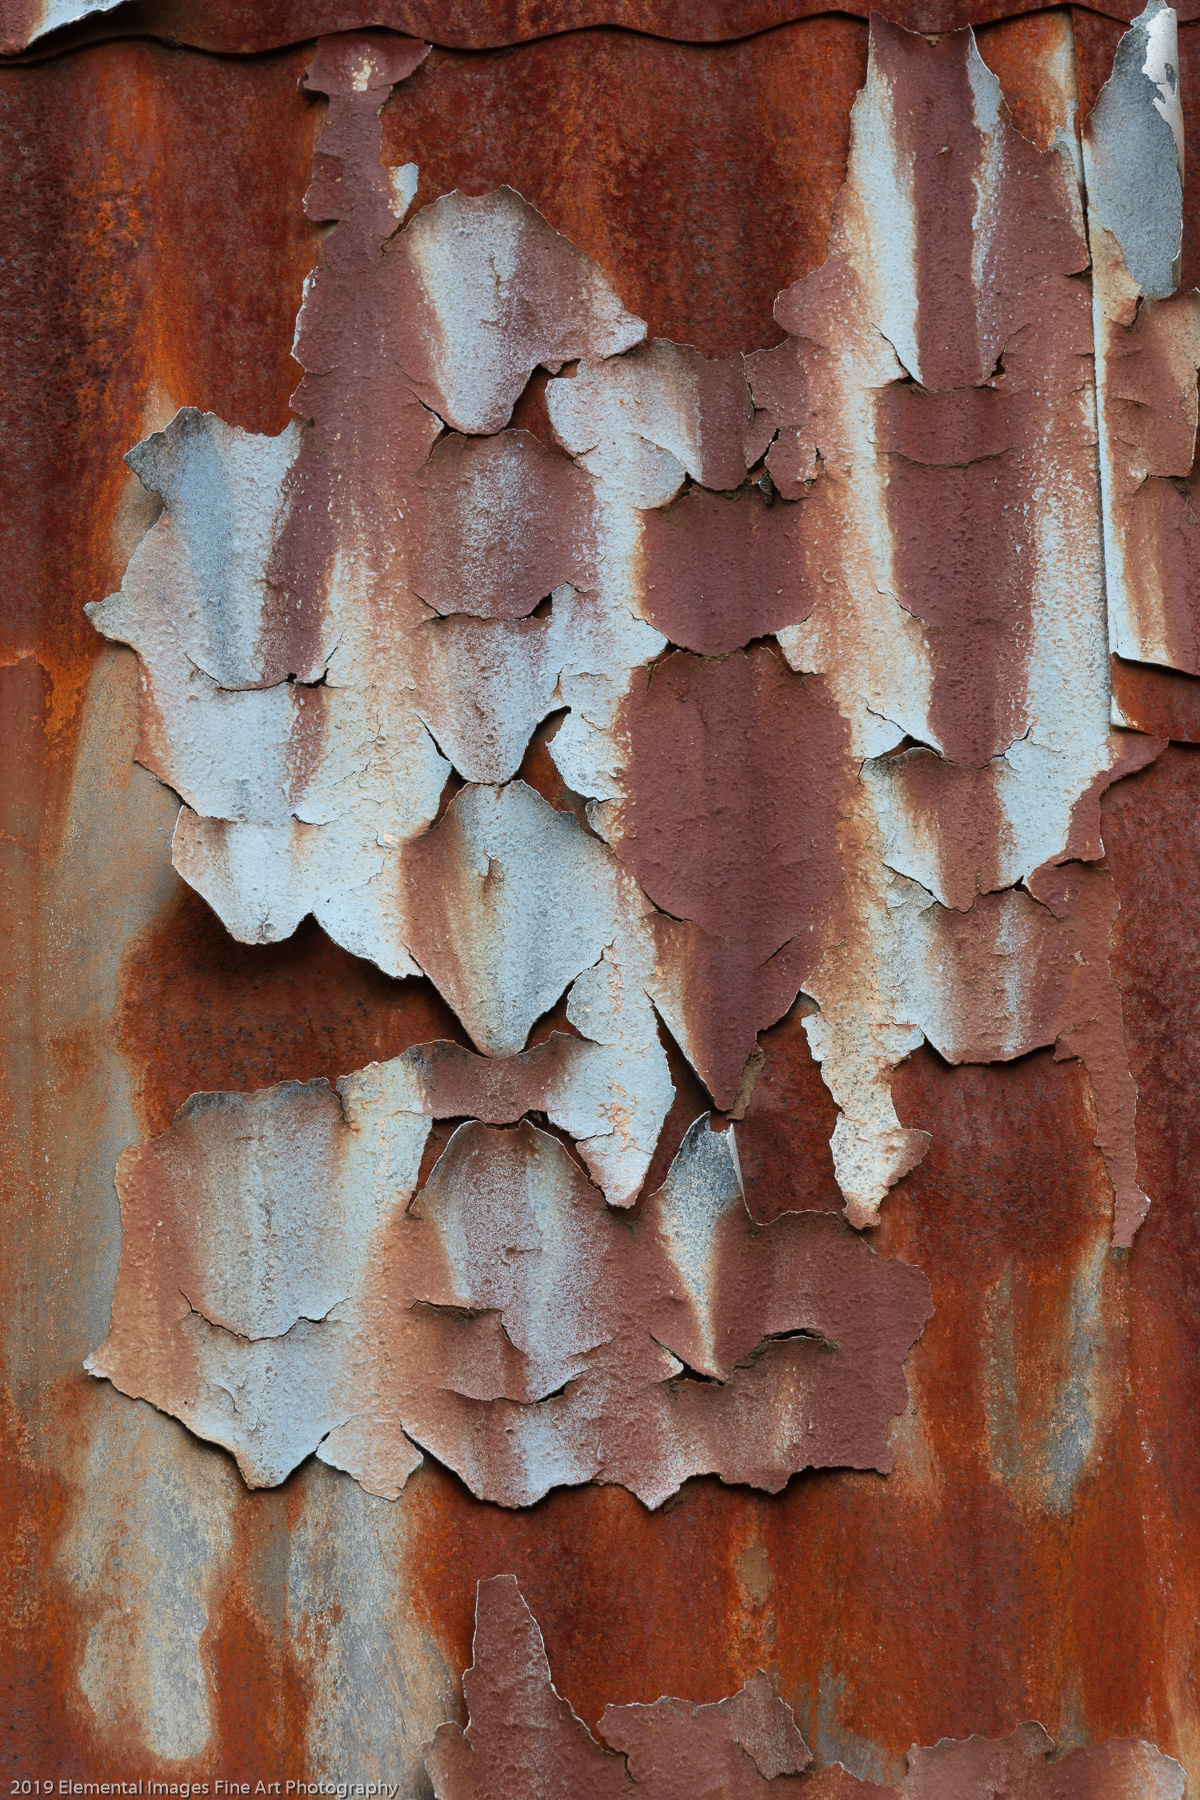 Rust #16 |  |  | USA - © 2019 Elemental Images Fine Art Photography - All Rights Reserved Worldwide